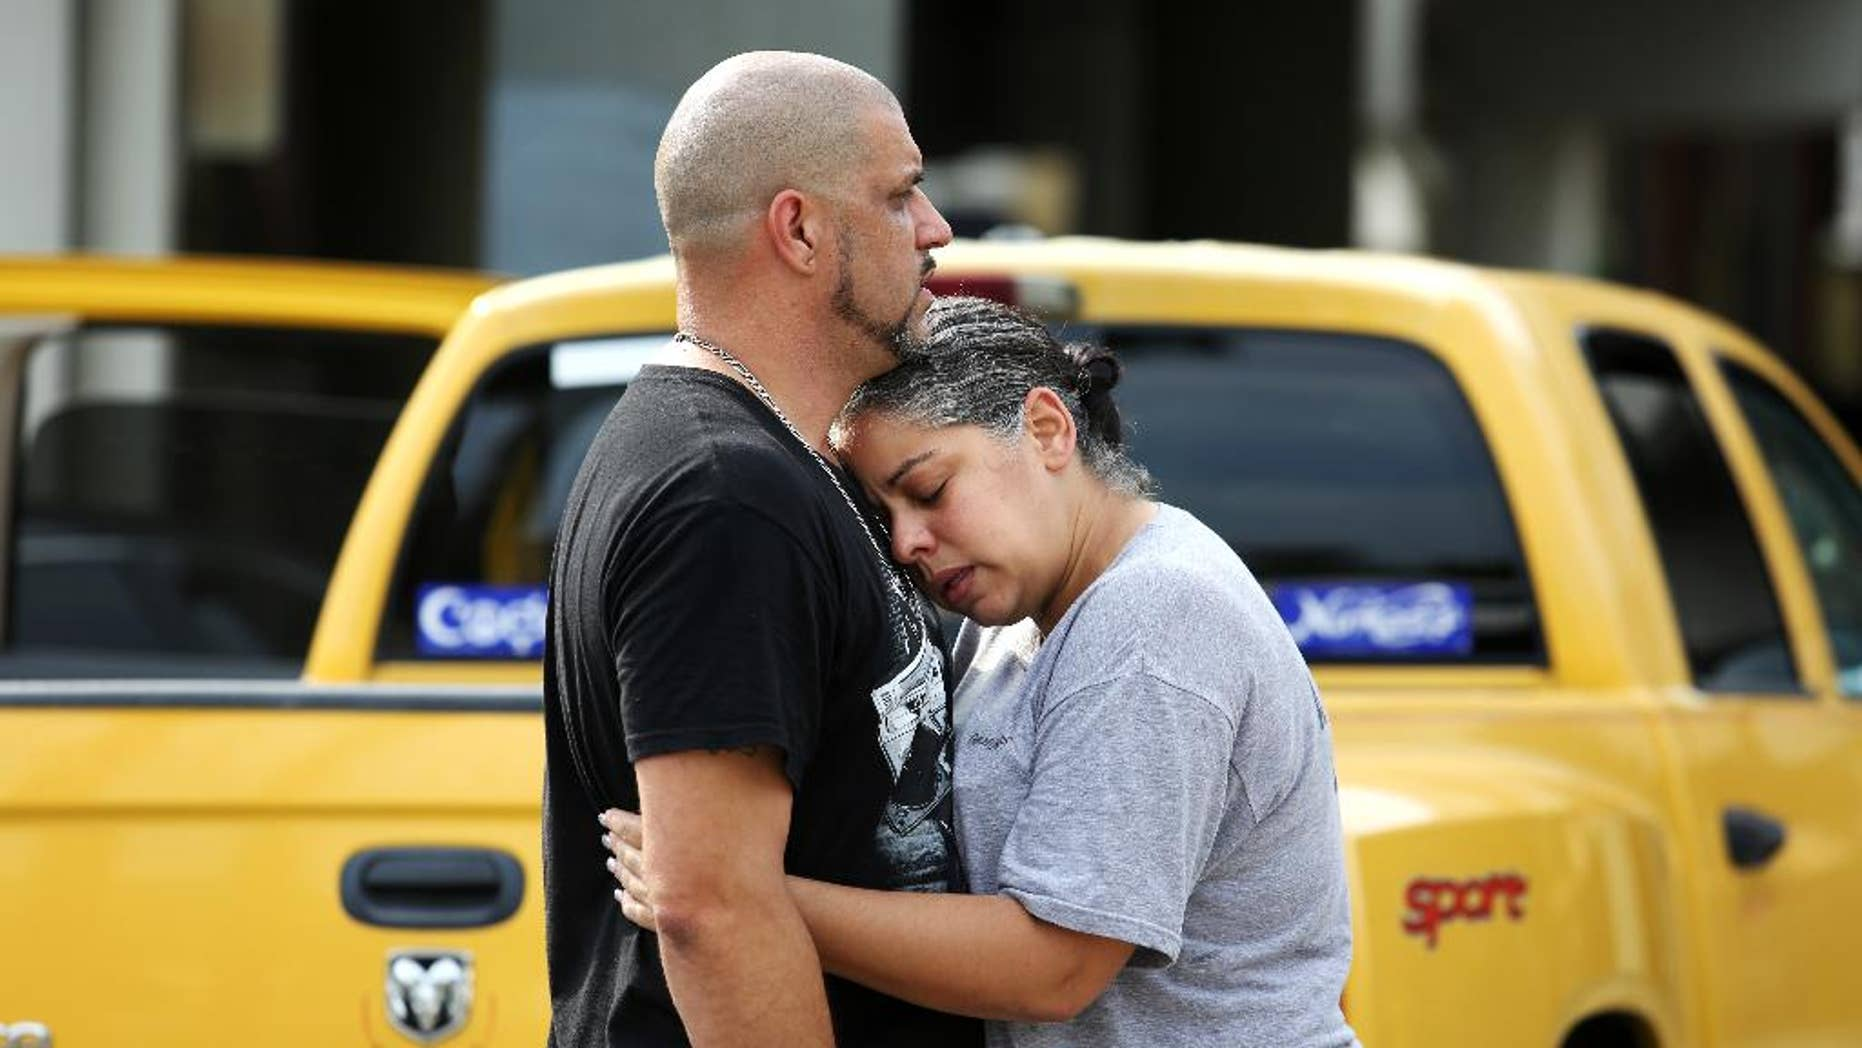 Ray Rivera, left, a DJ at Pulse Orlando nightclub, is consoled by a friend, outside of the Orlando Police Department after a shooting involving multiple fatalities at the nightclub, Sunday, June 12, 2016, in Orlando, Fla. (Joe Burbank/Orlando Sentinel via AP) MAGS OUT; NO SALES; MANDATORY CREDIT